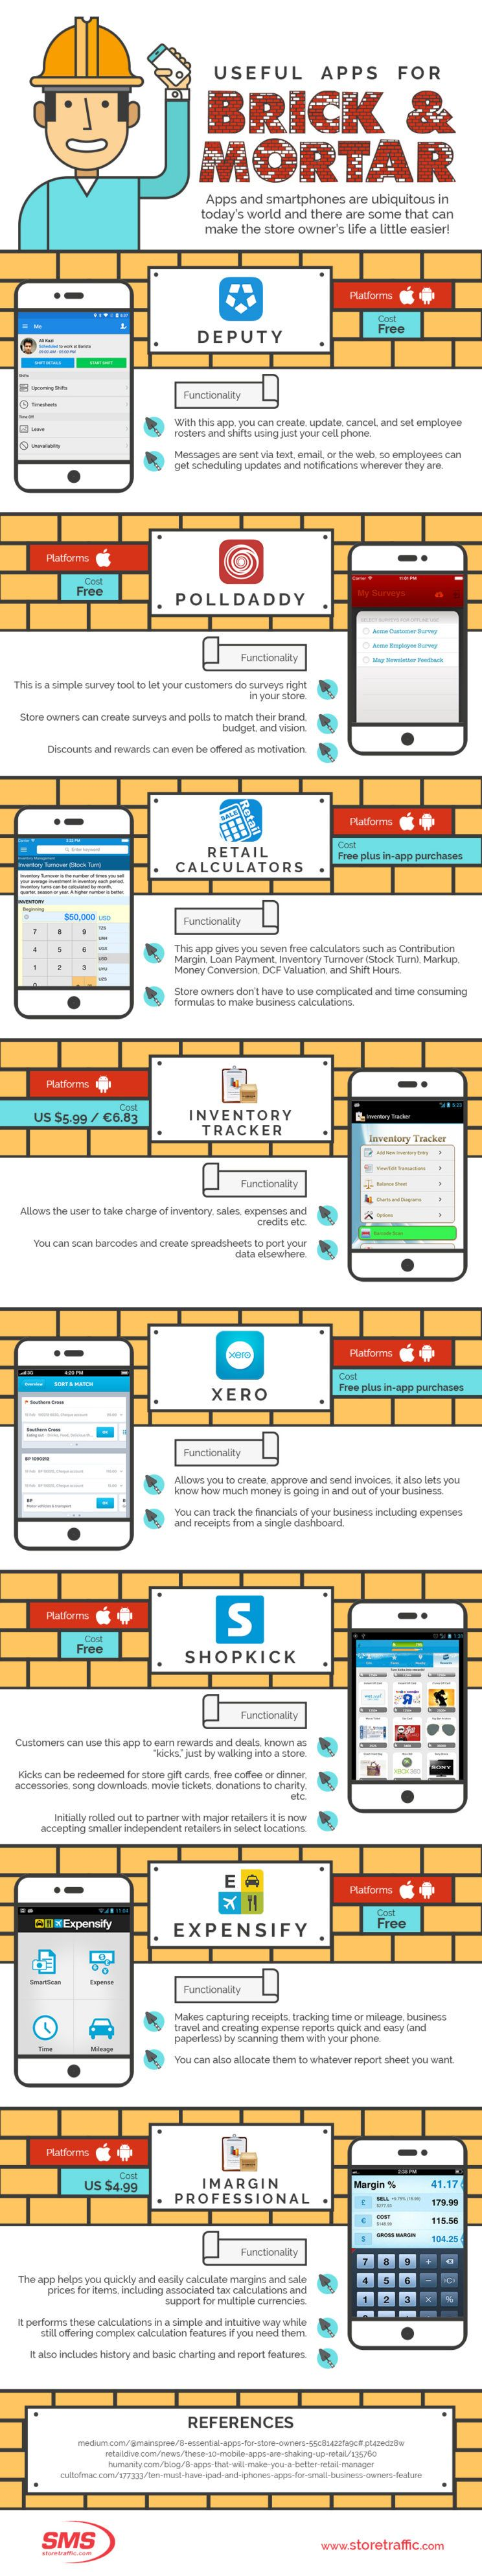 Useful Apps for Brick and Mortar